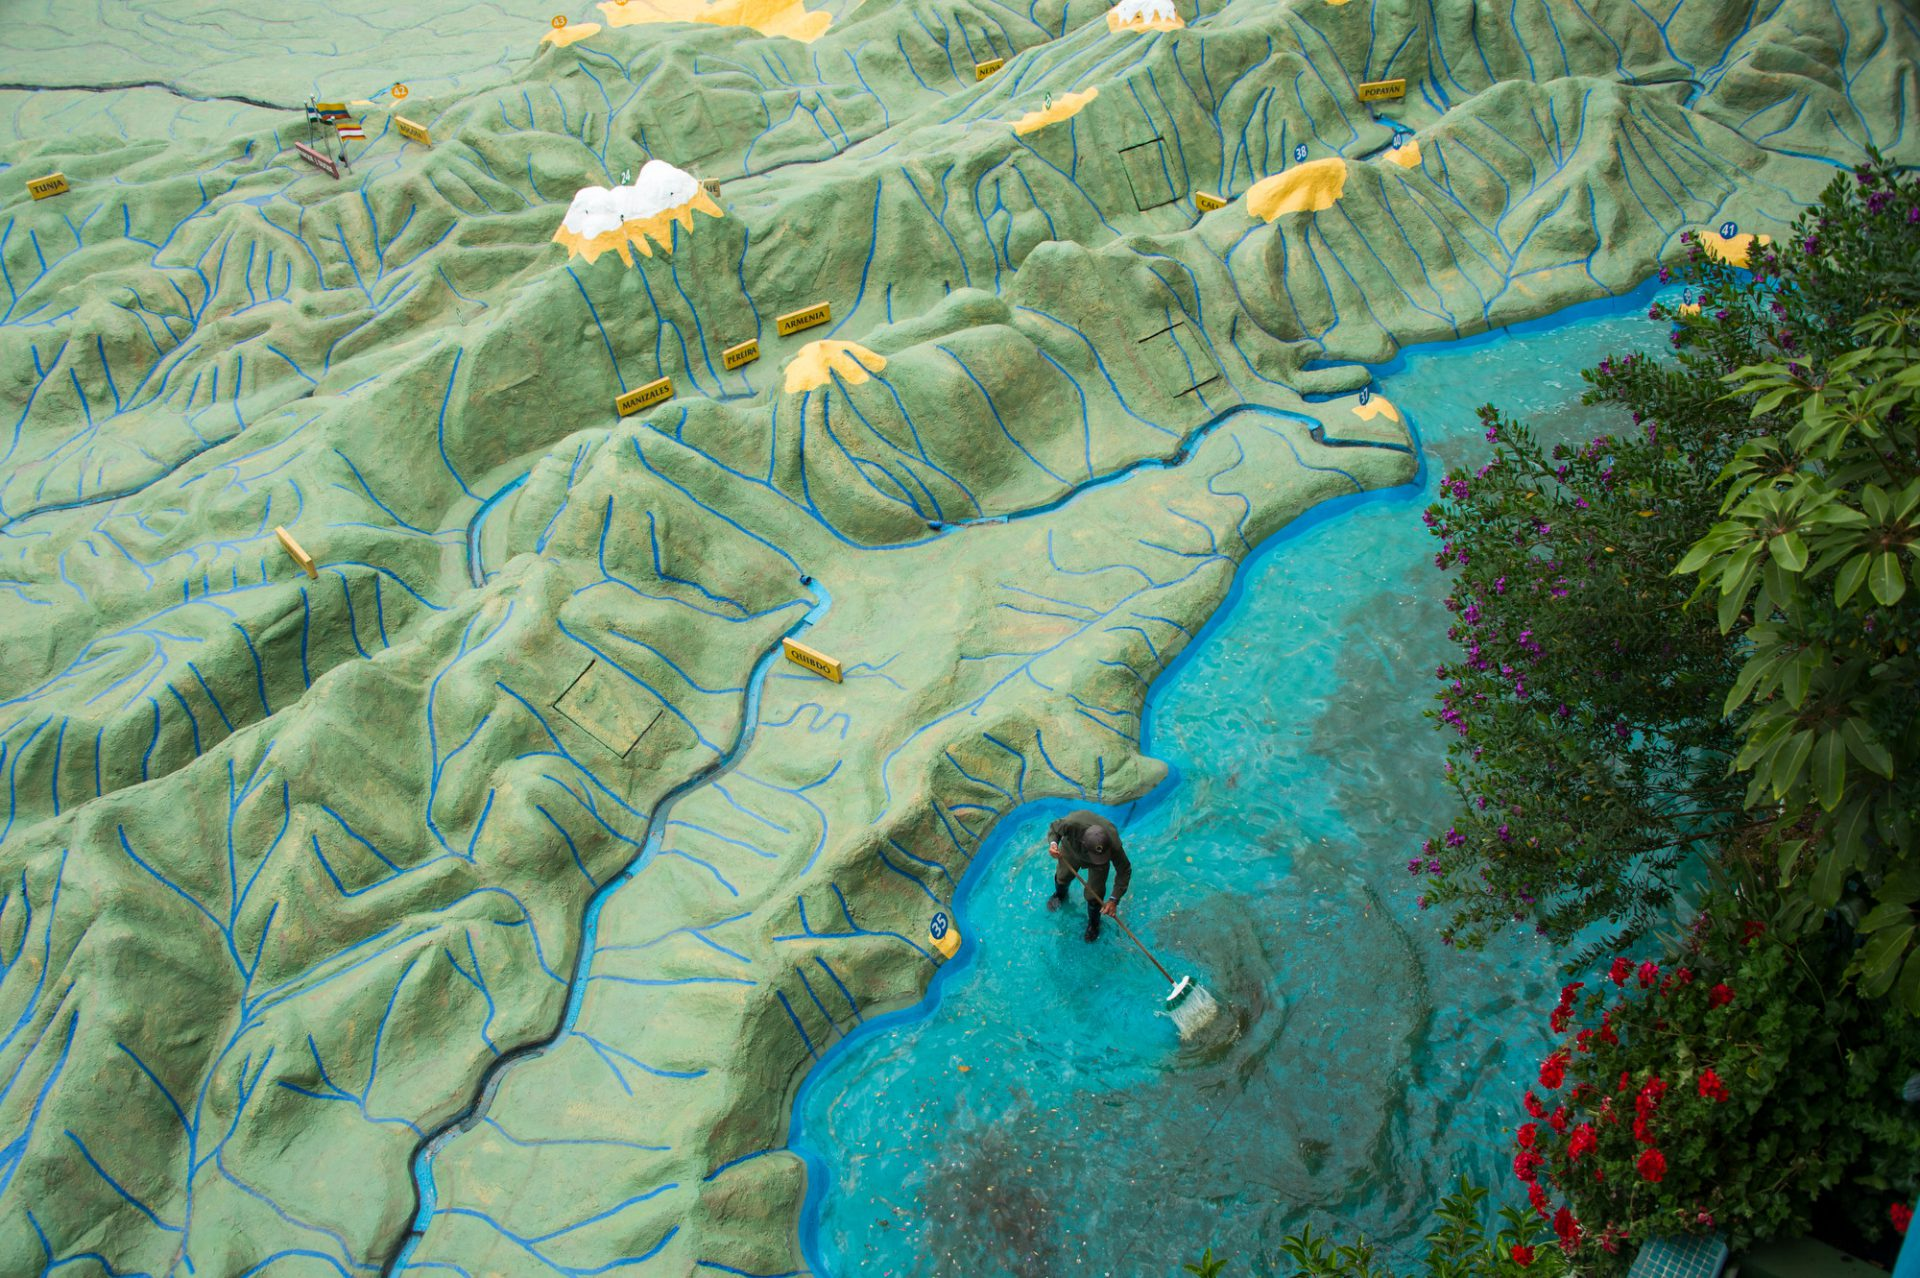 Photo: A staff member scrubs algae off the bottom of the ocean section of a giant relief map of Colombia at Parque Jaime Duque, a tourist attraction near Bogota.